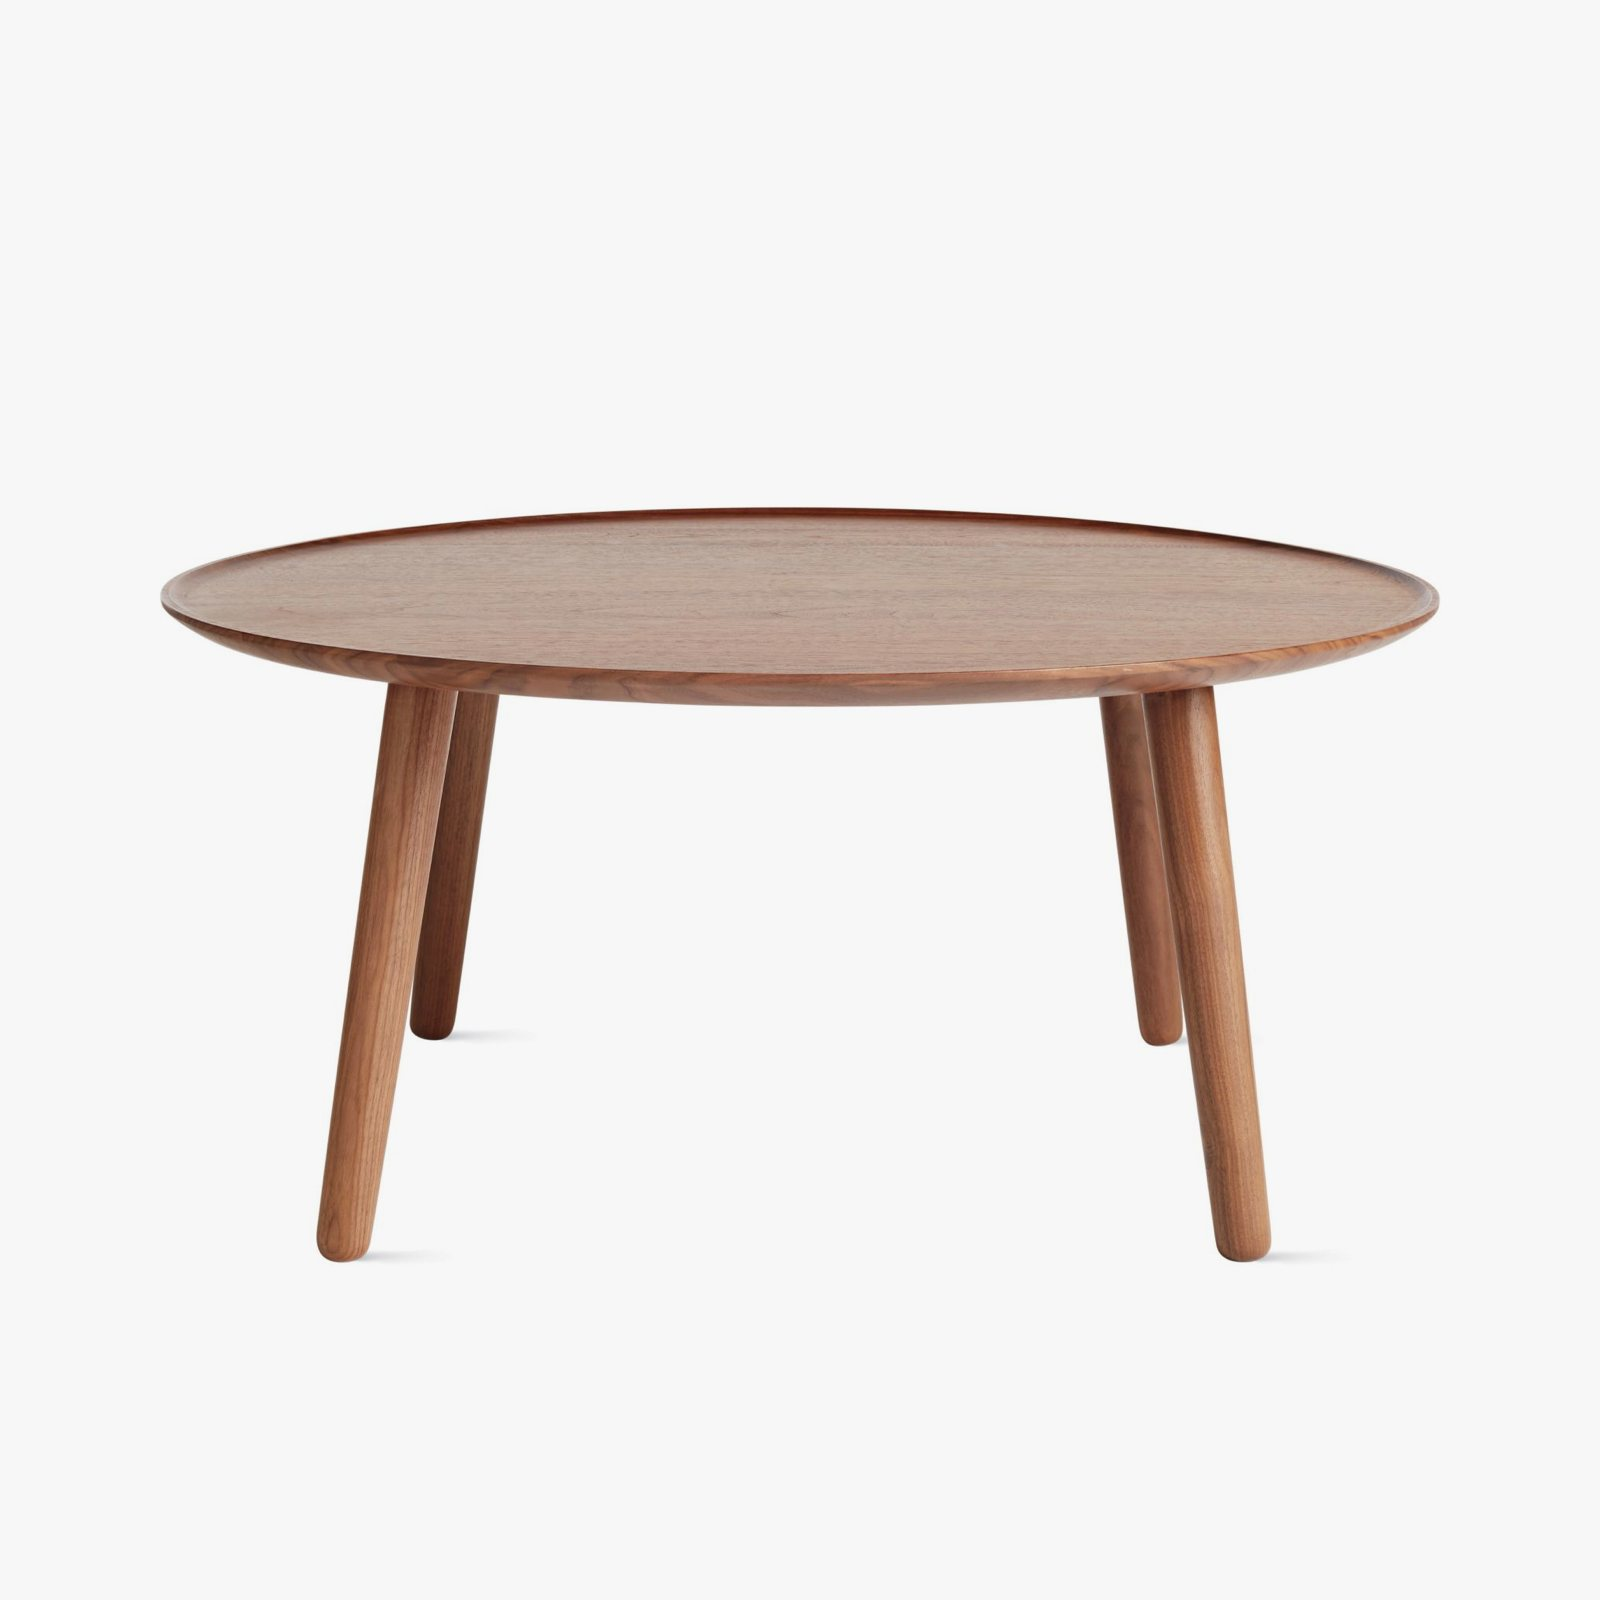 Edge Coffee Table By Gabriel Tan Studio For Design Within Reach